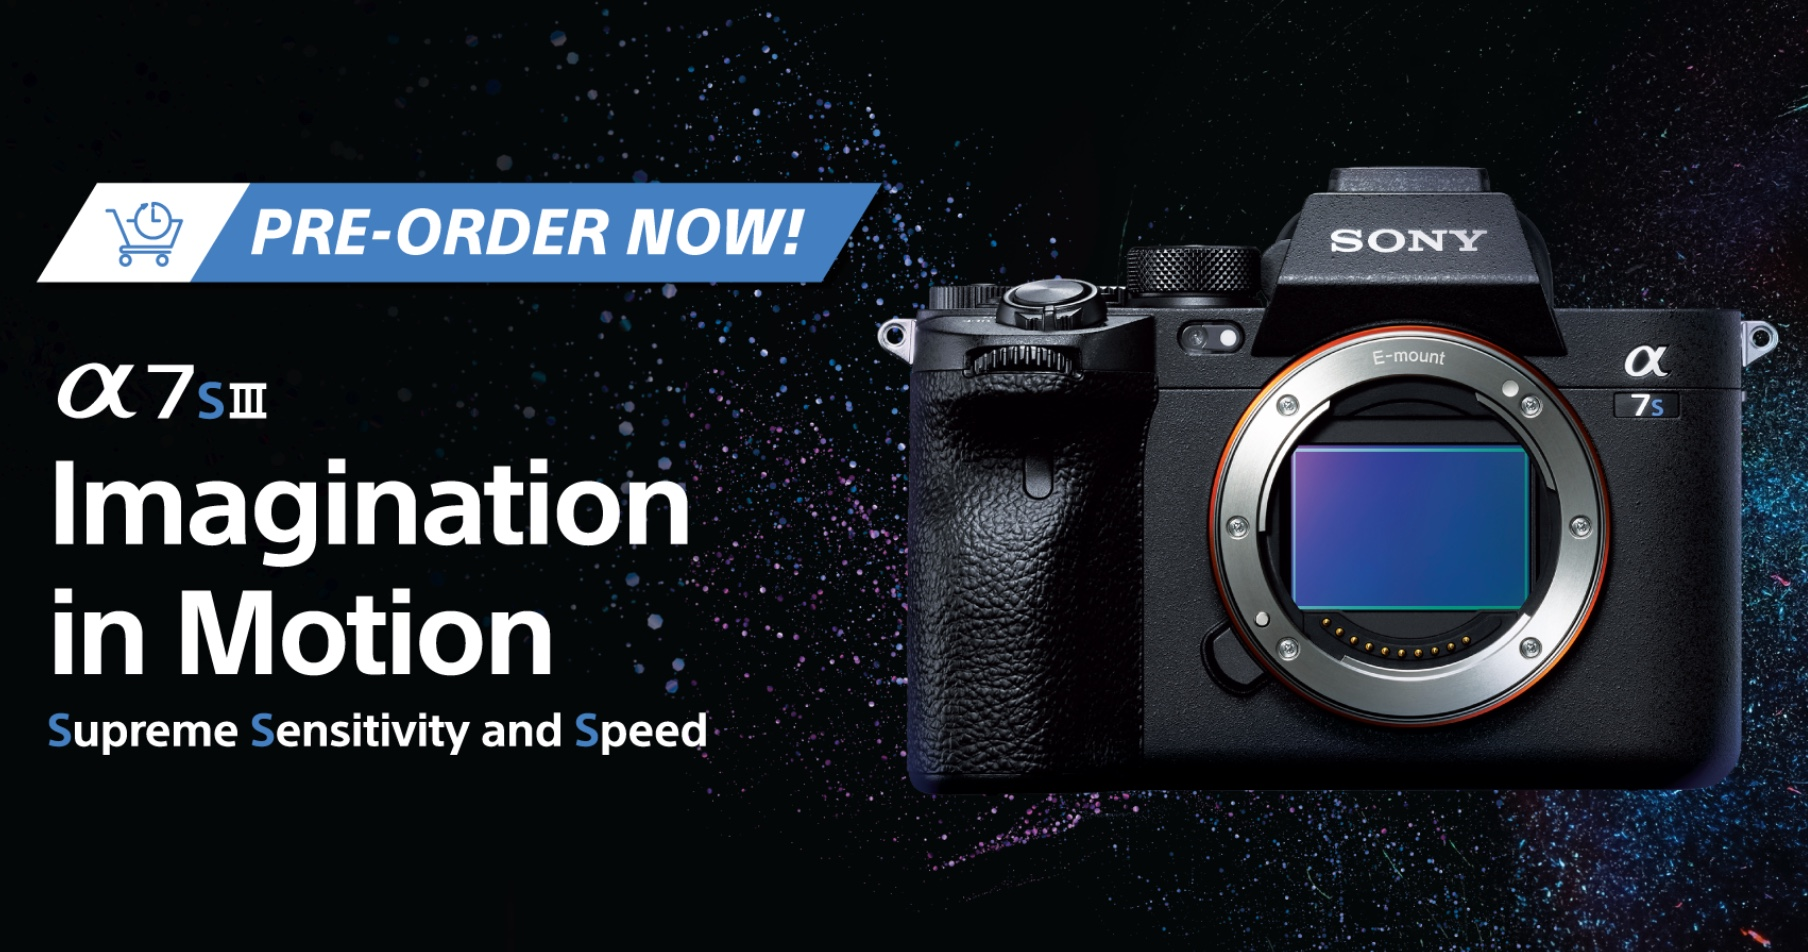 Highly Anticipated Sony Alpha 7S III is now available for pre-order